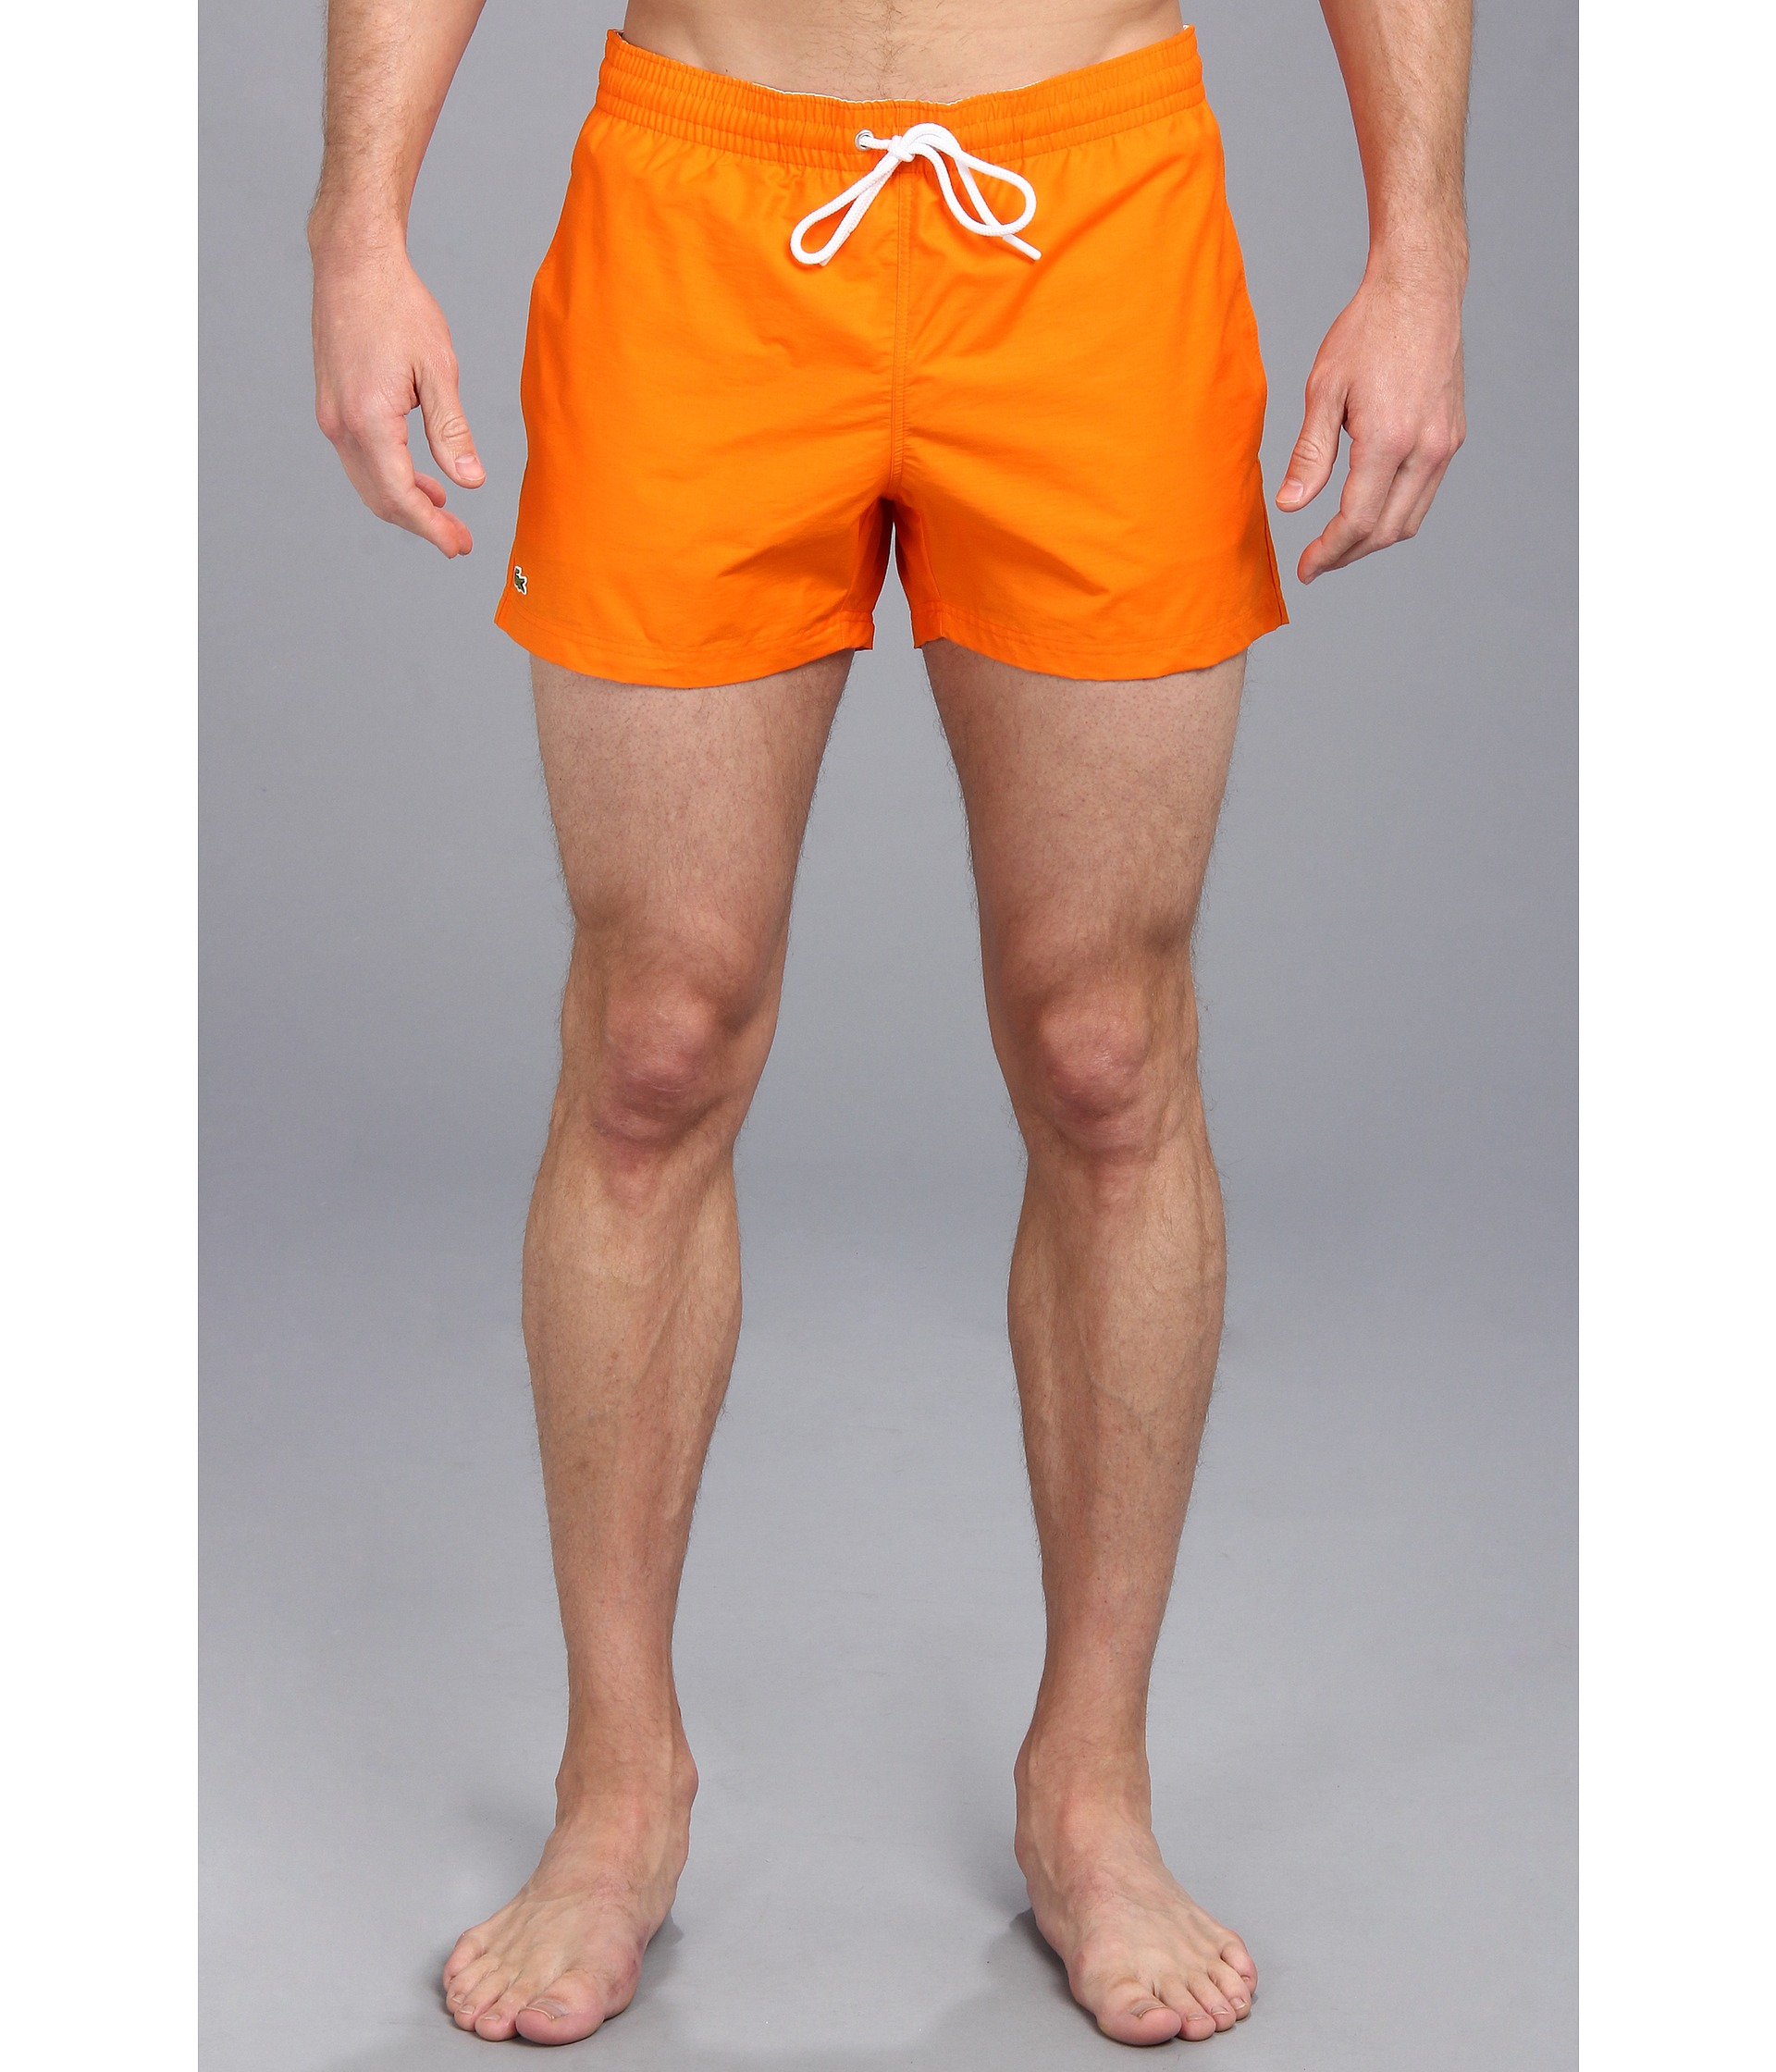 b4c325e588e2d Lyst - Lacoste Classic Swim Trunk 35 in Orange for Men